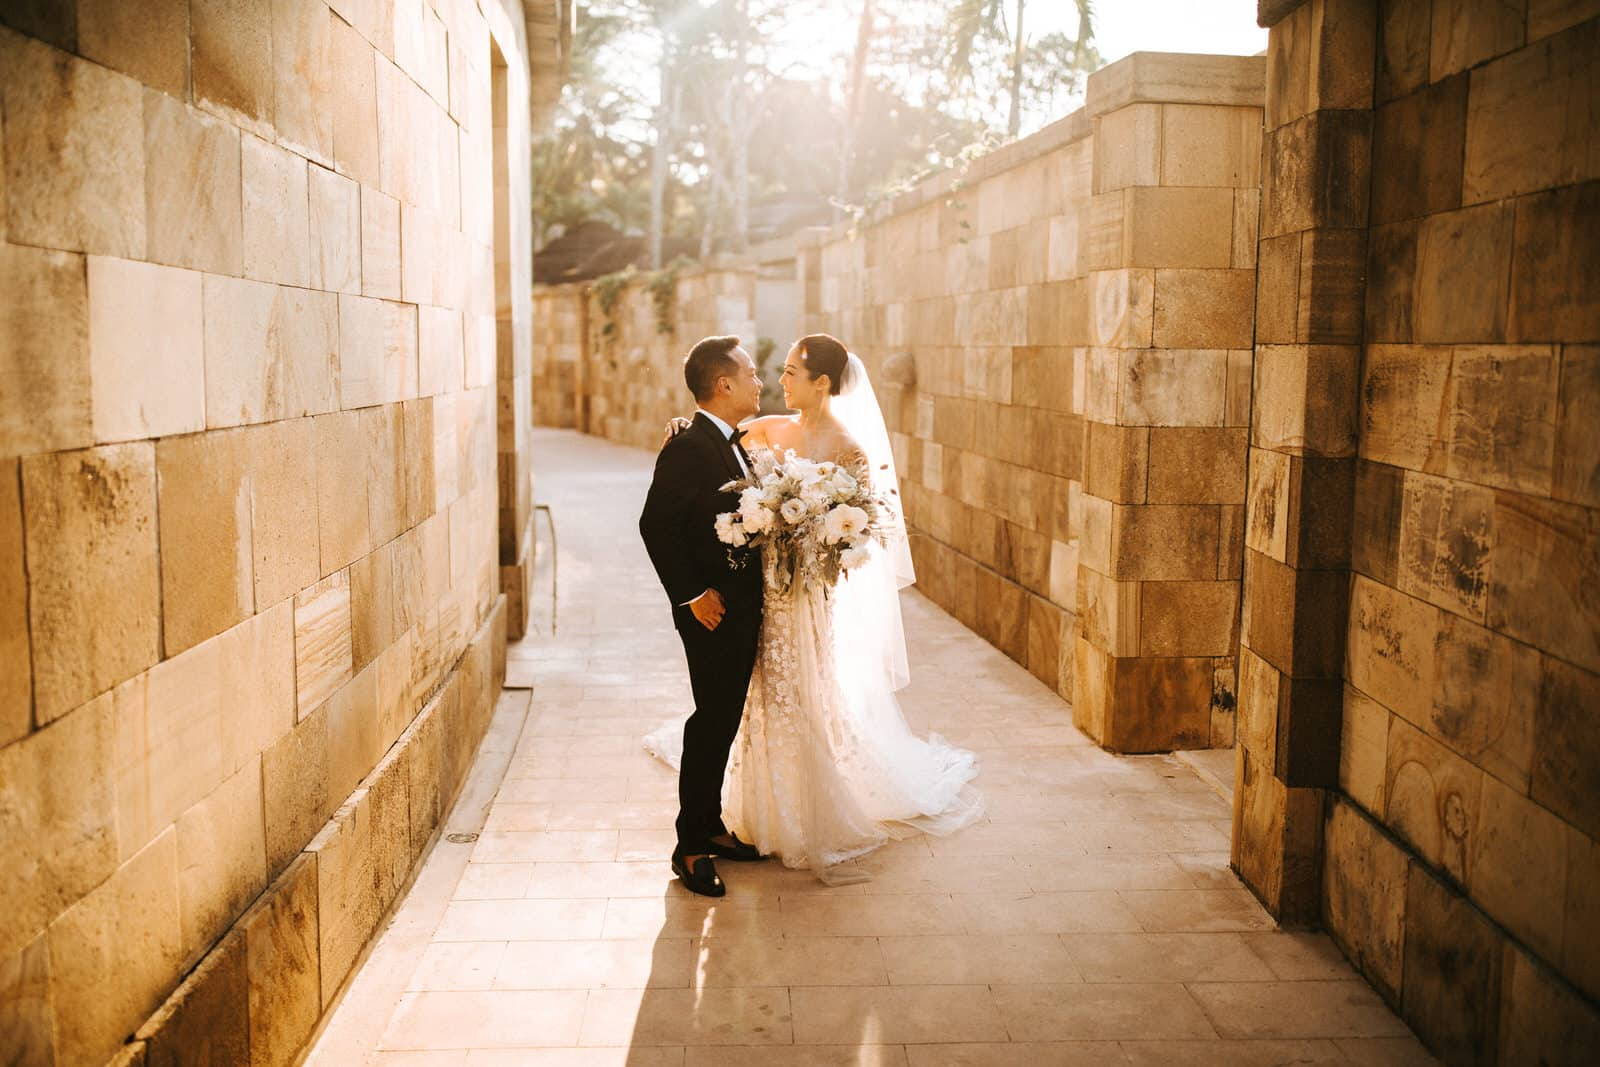 A wedding couple is standing is an outdoor hallway and is kissing.